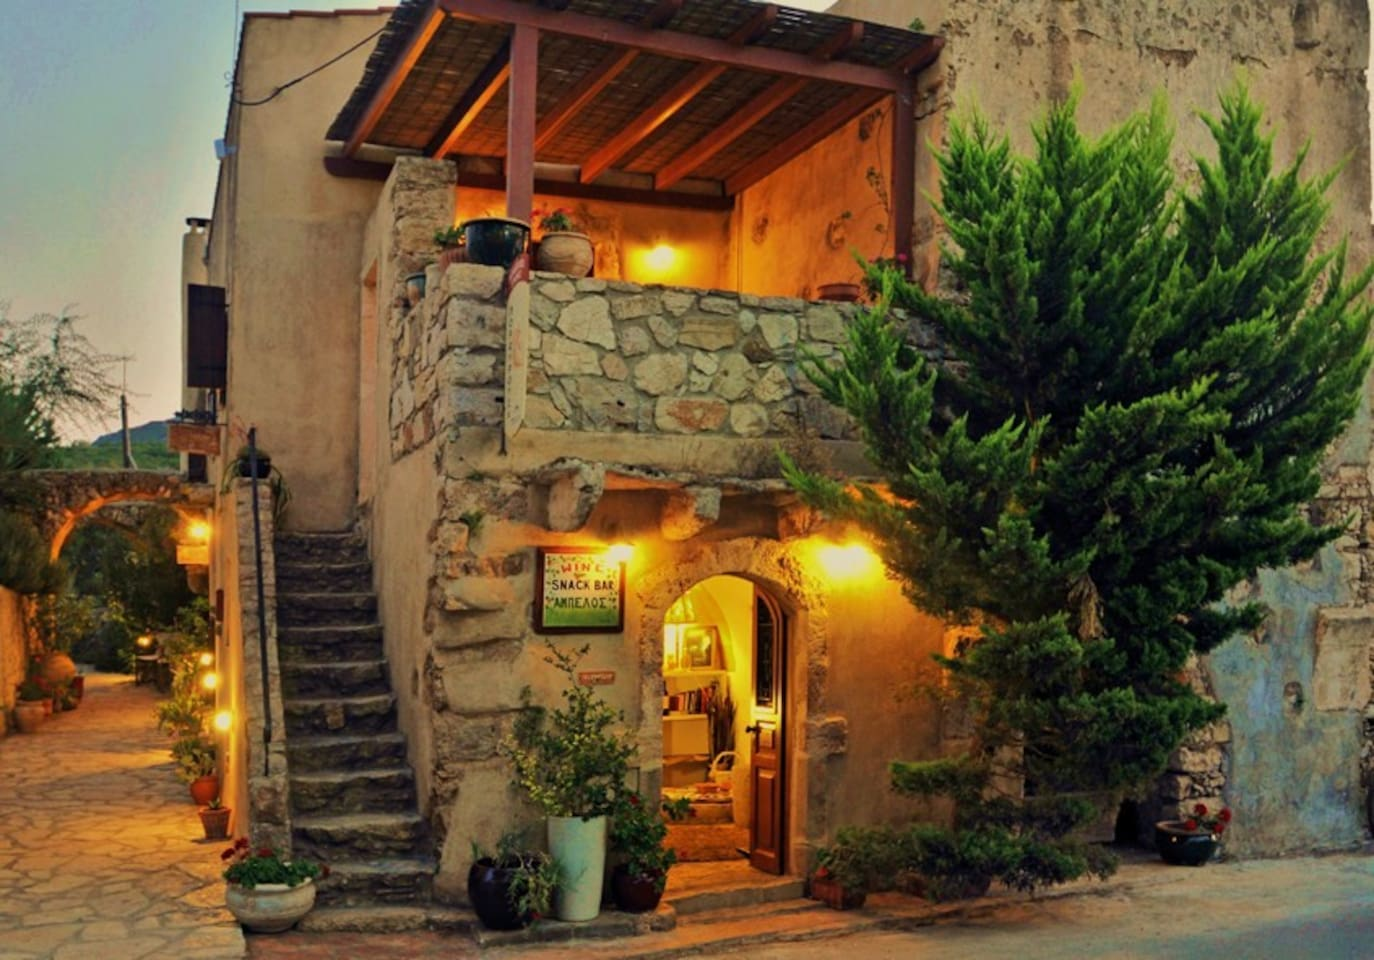 The entrance of Porfyrousa traditional Hotel